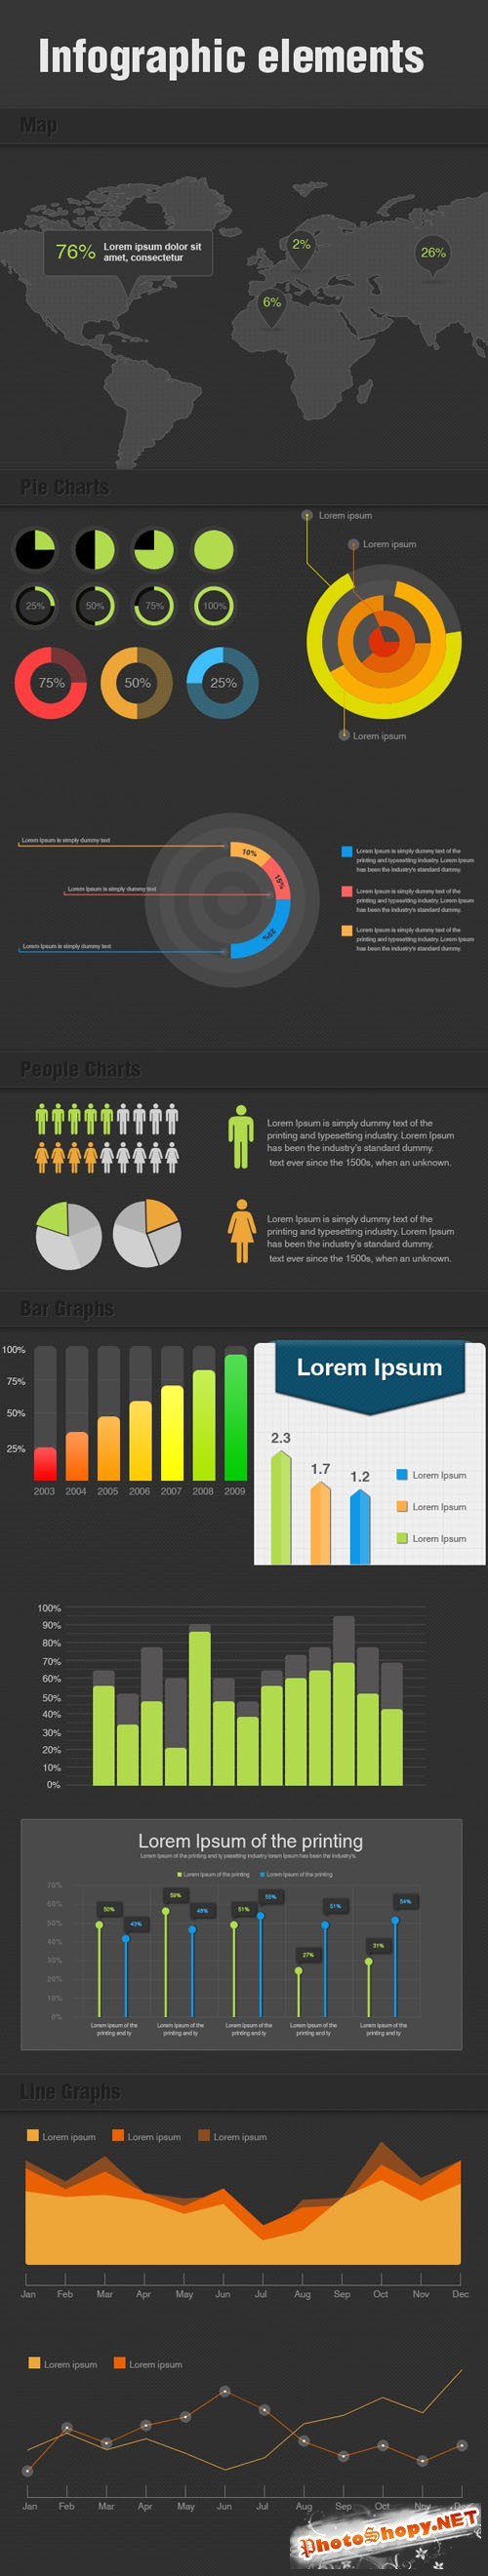 Designtnt - Infographic Elements PSD